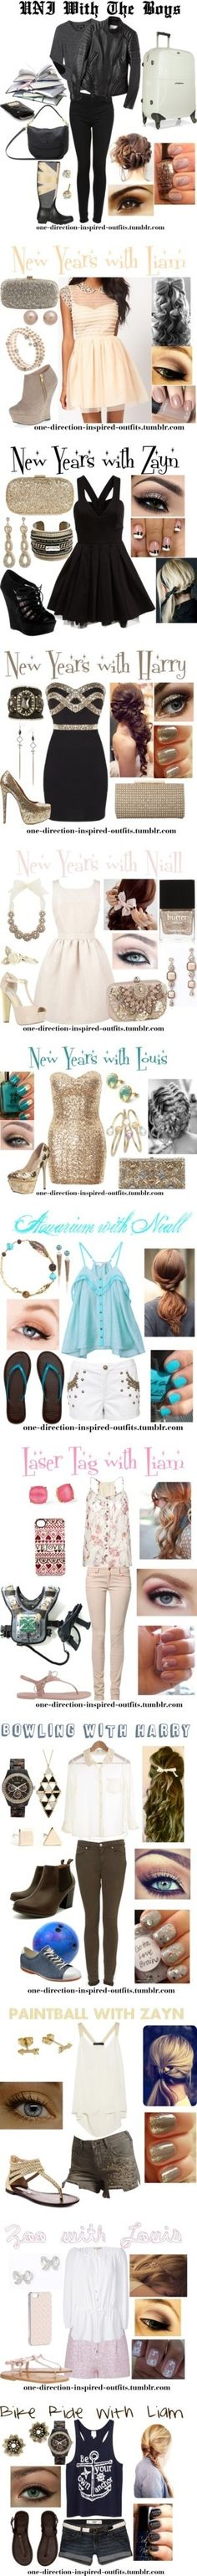 One direction inspired outfits